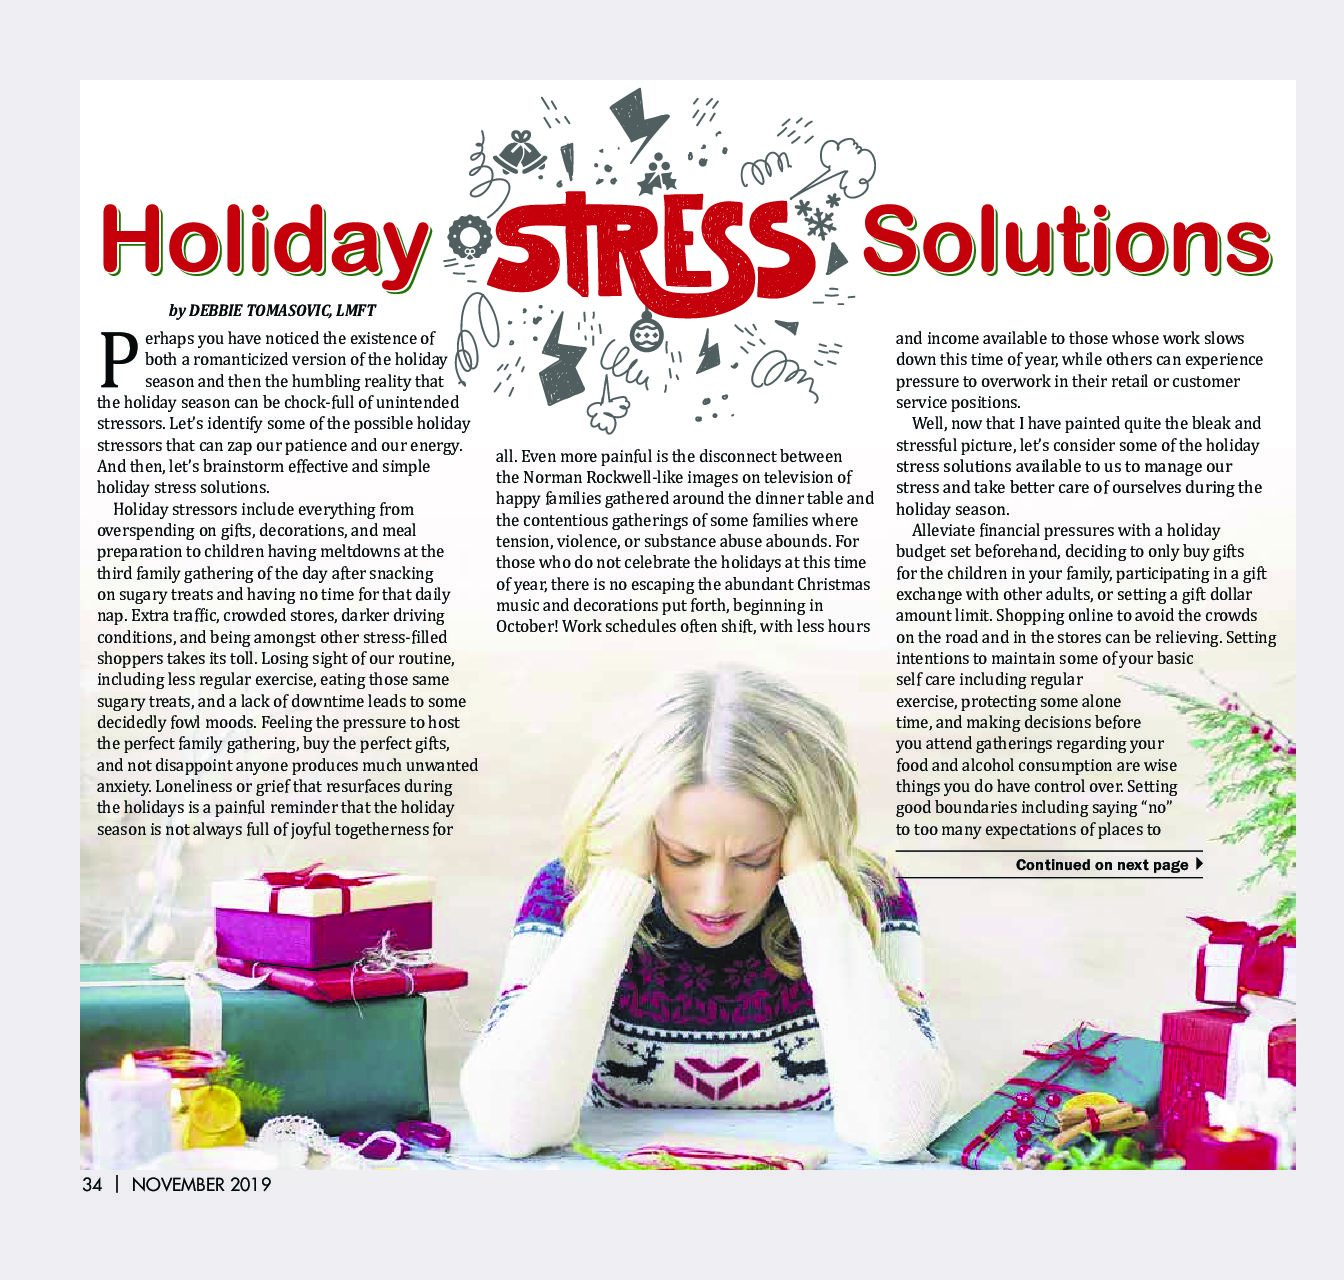 Holiday Stress Solutions